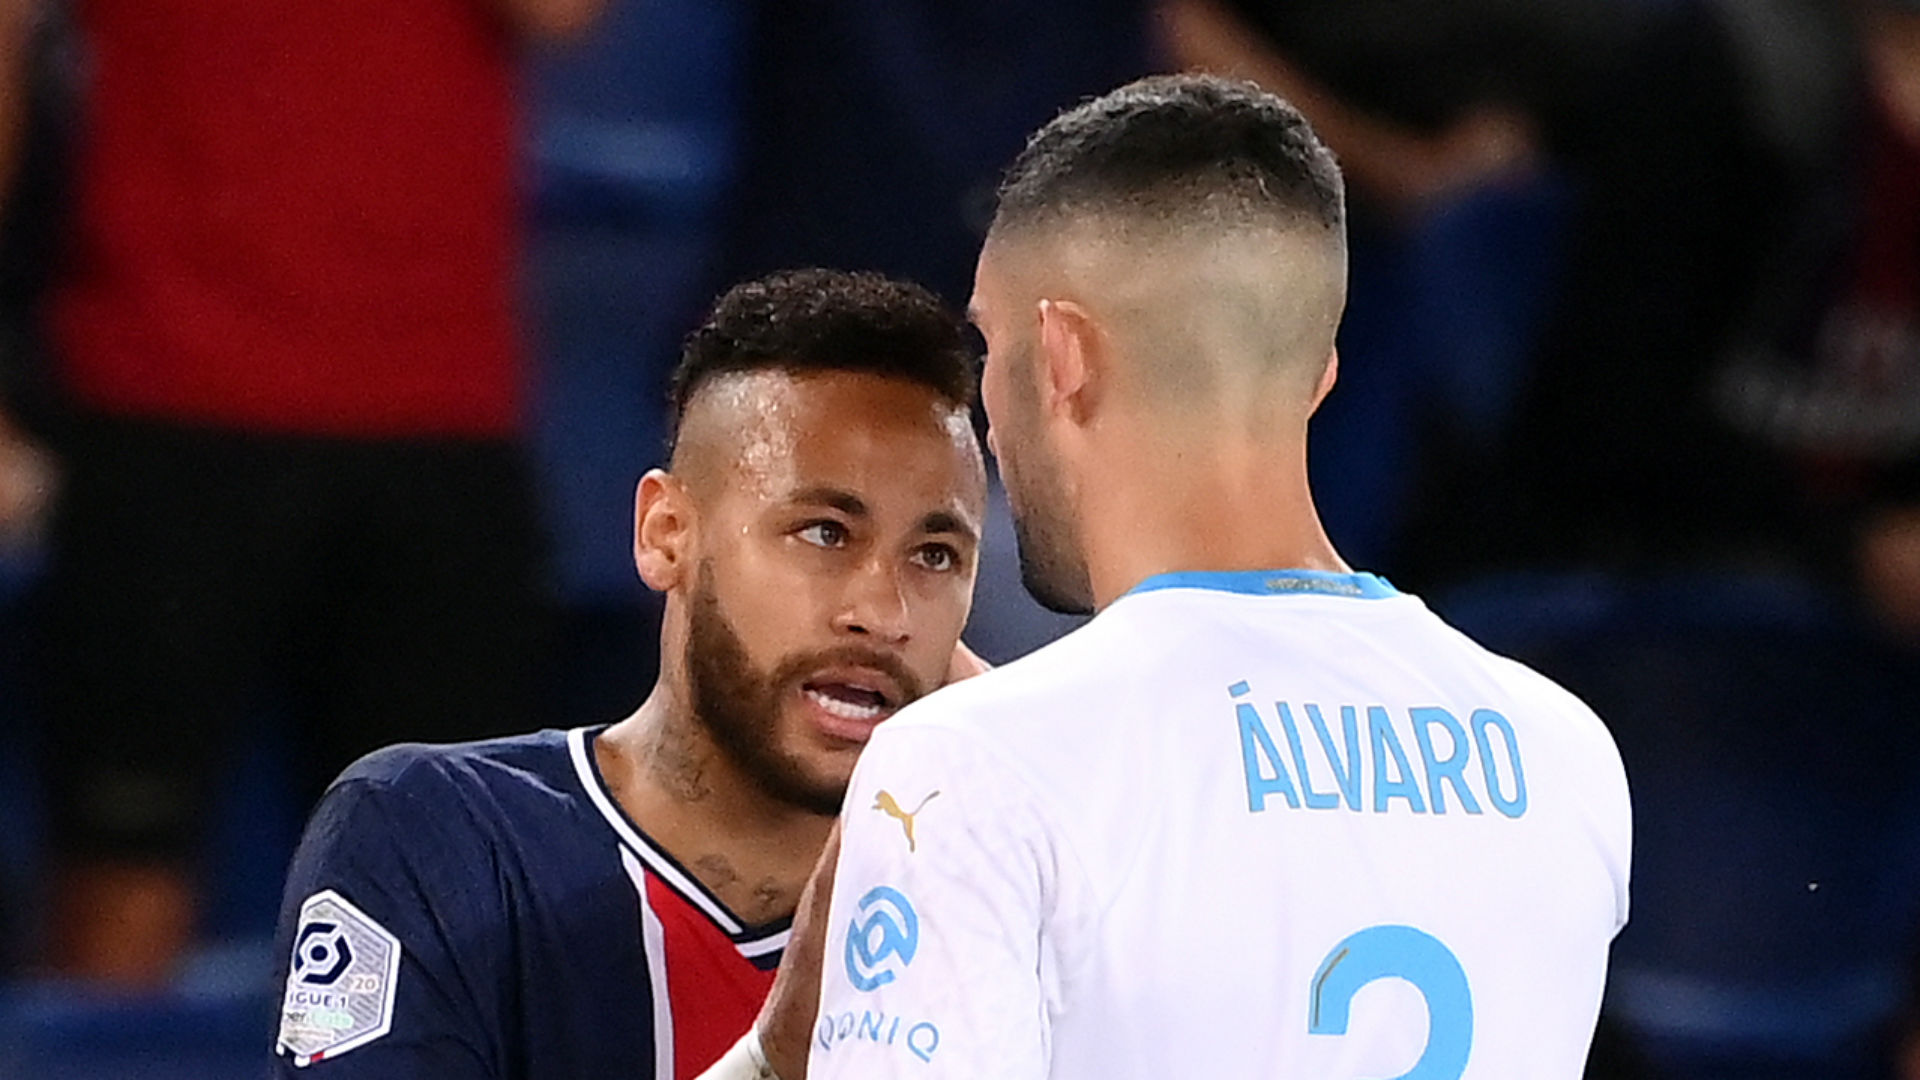 Neymar and Alvaro avoid punishment for alleged racism